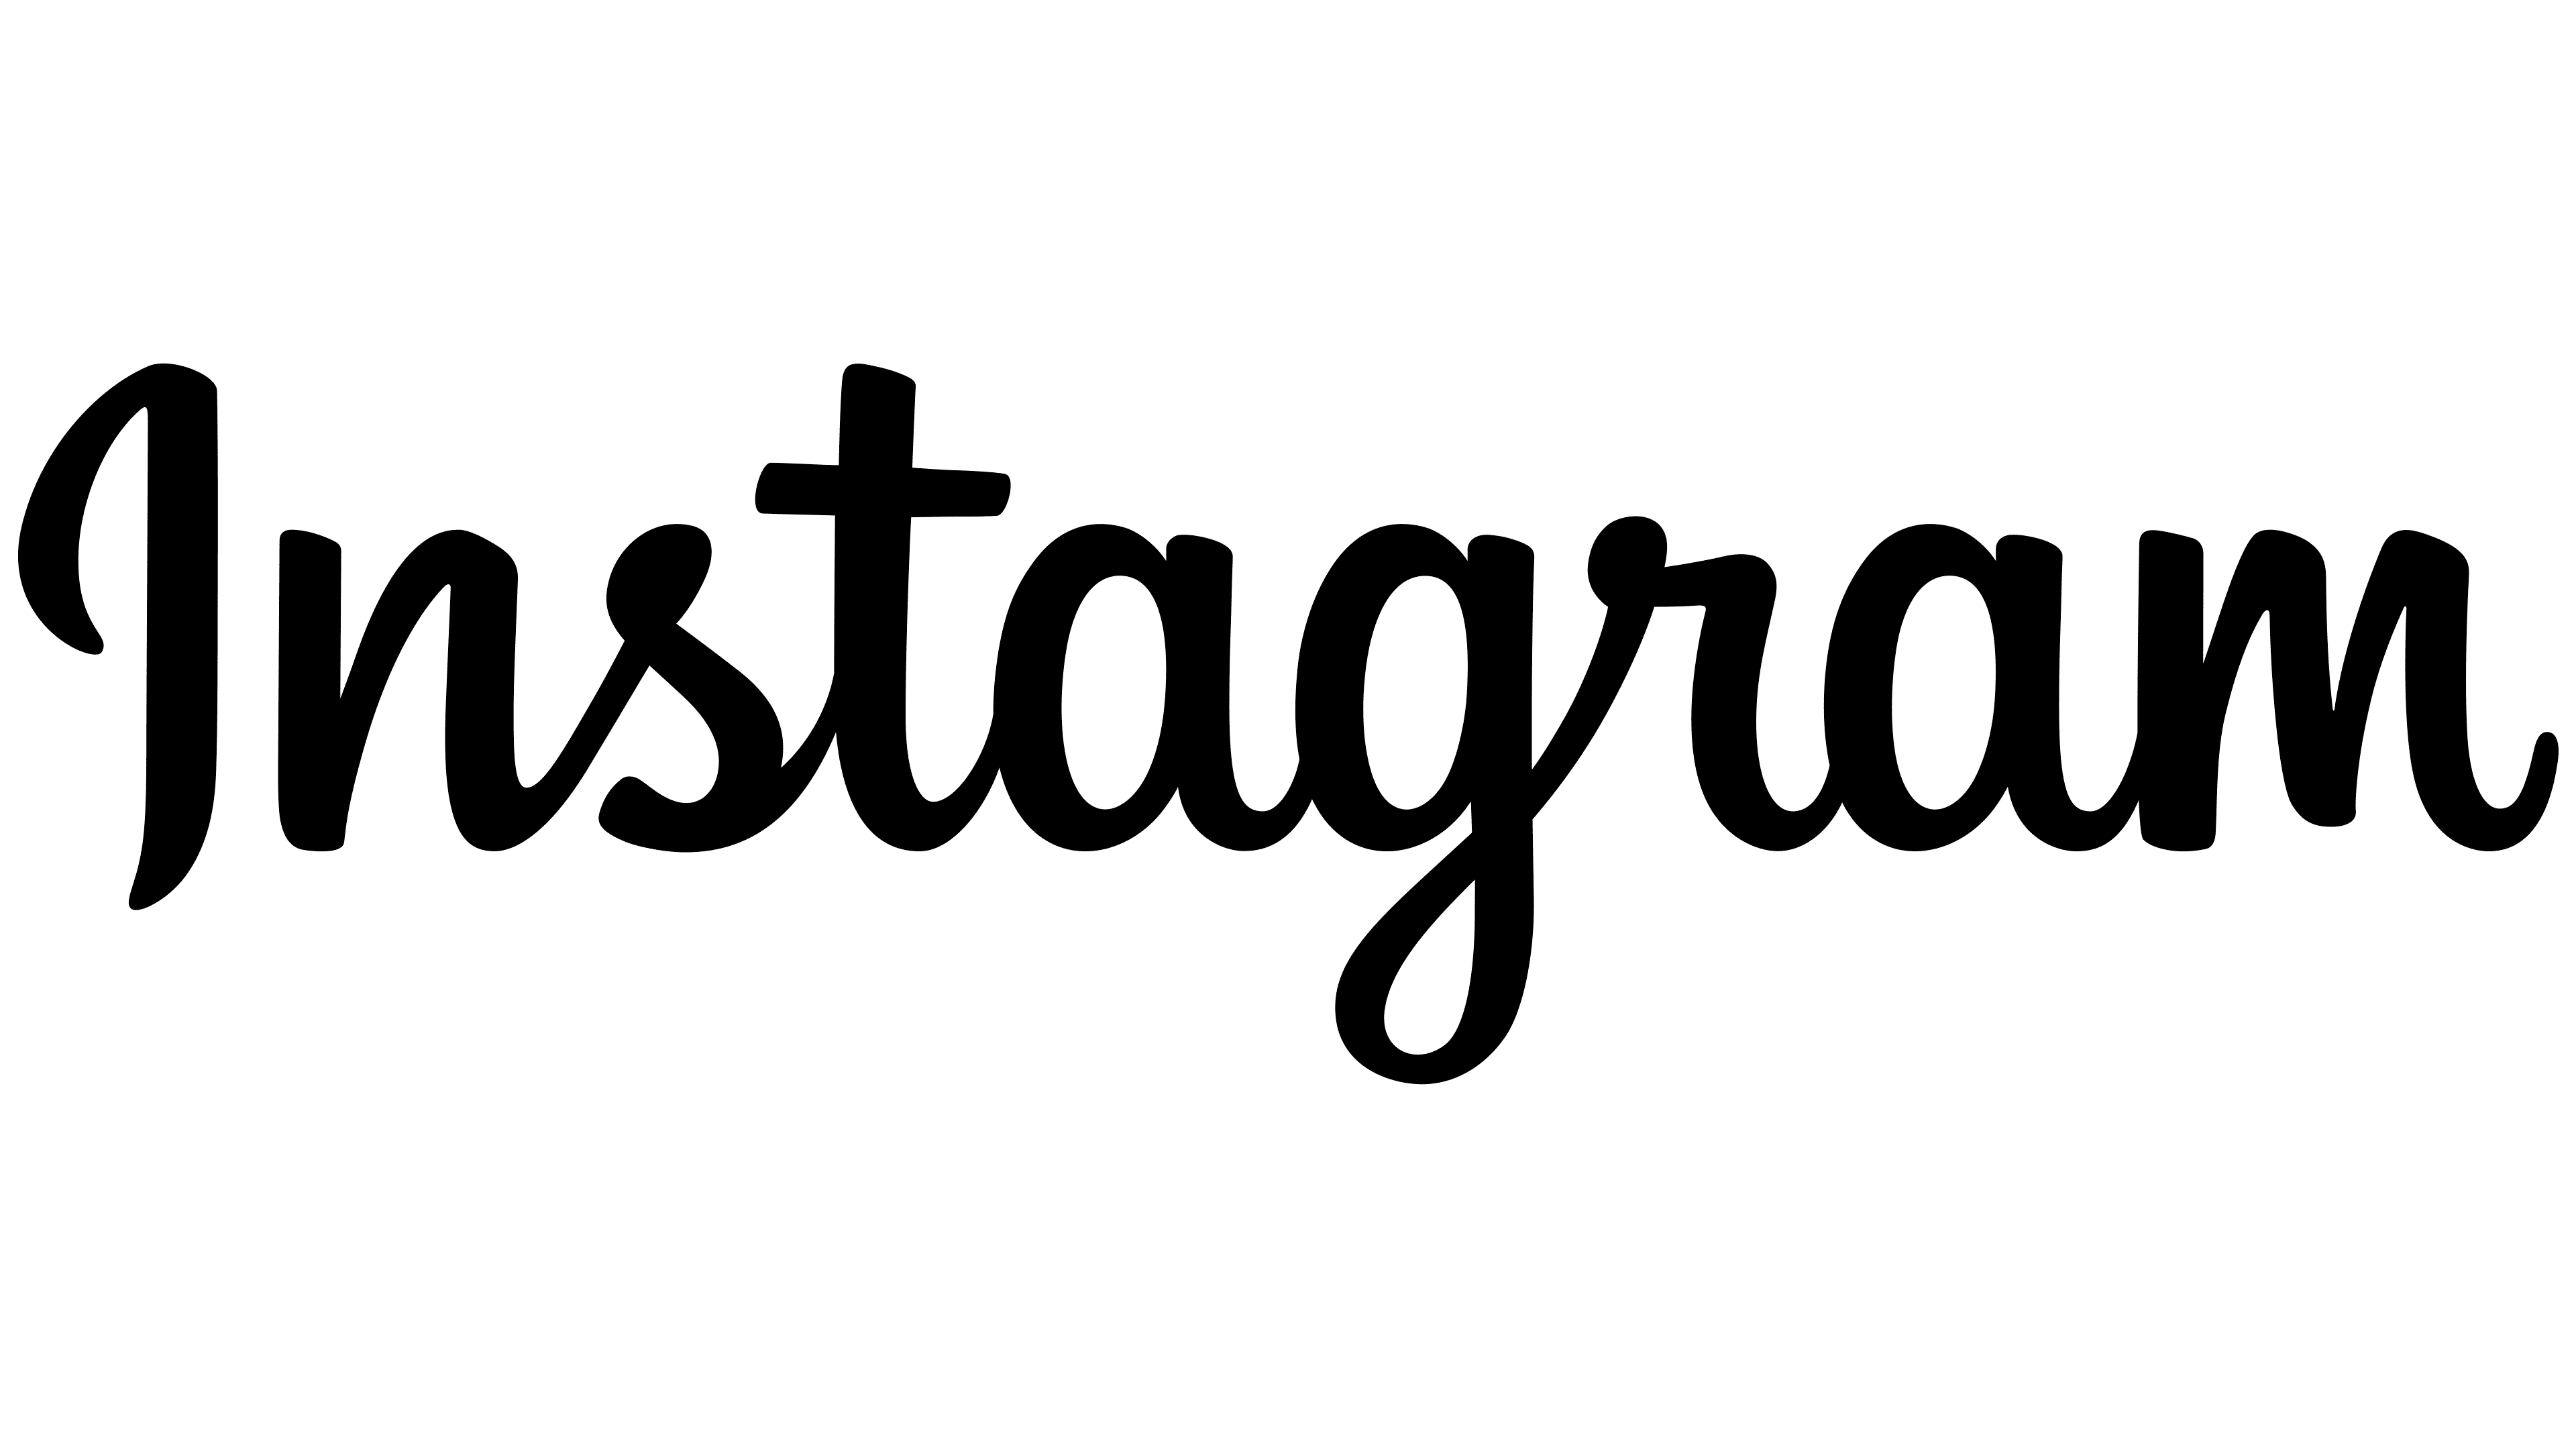 Instagram Logo | The most famous brands and company logos in the world